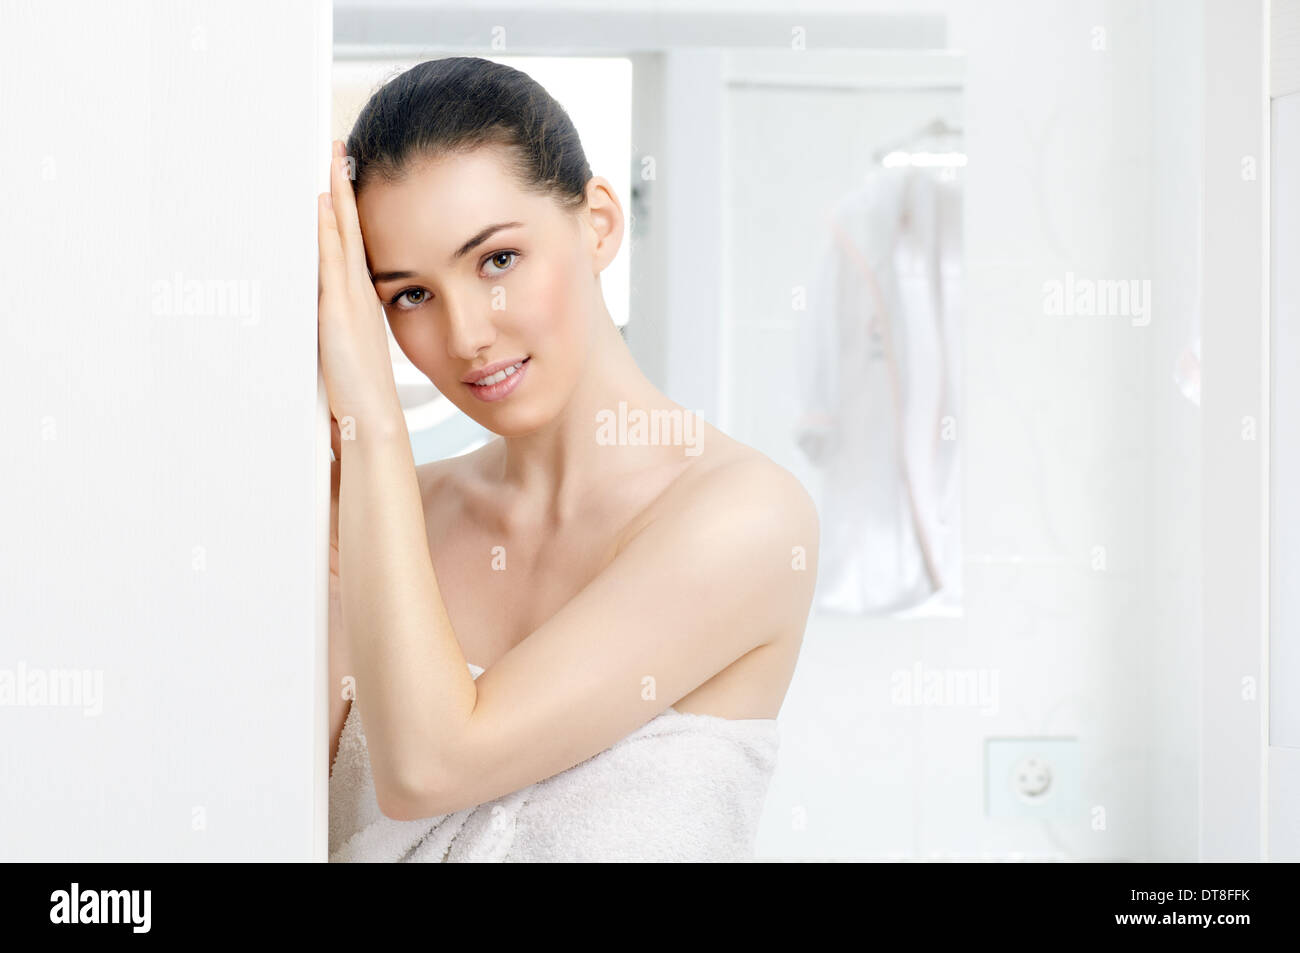 girl comes out from the bathroom - Stock Image